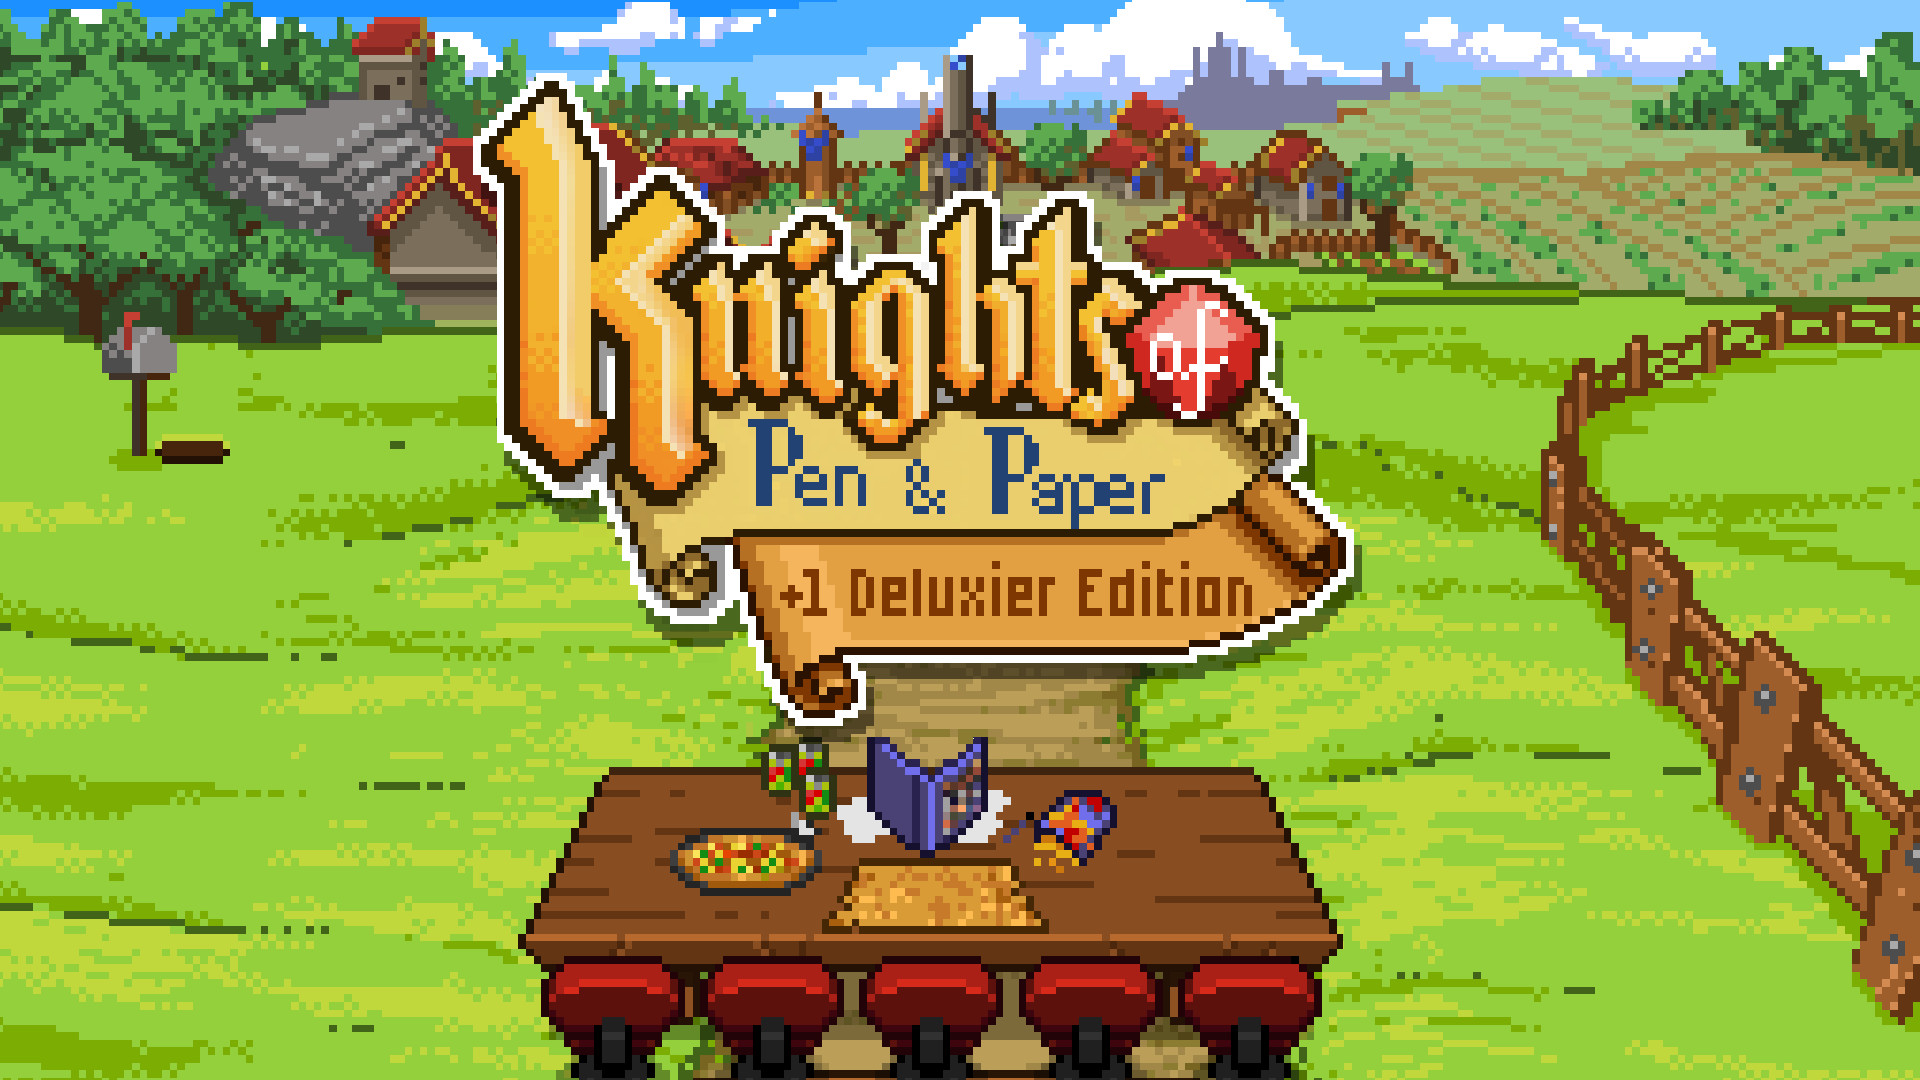 ■ナイツ オブ ペン アンド ペーパー(Knights of Pen and Paper +1 Deluxier Edition)